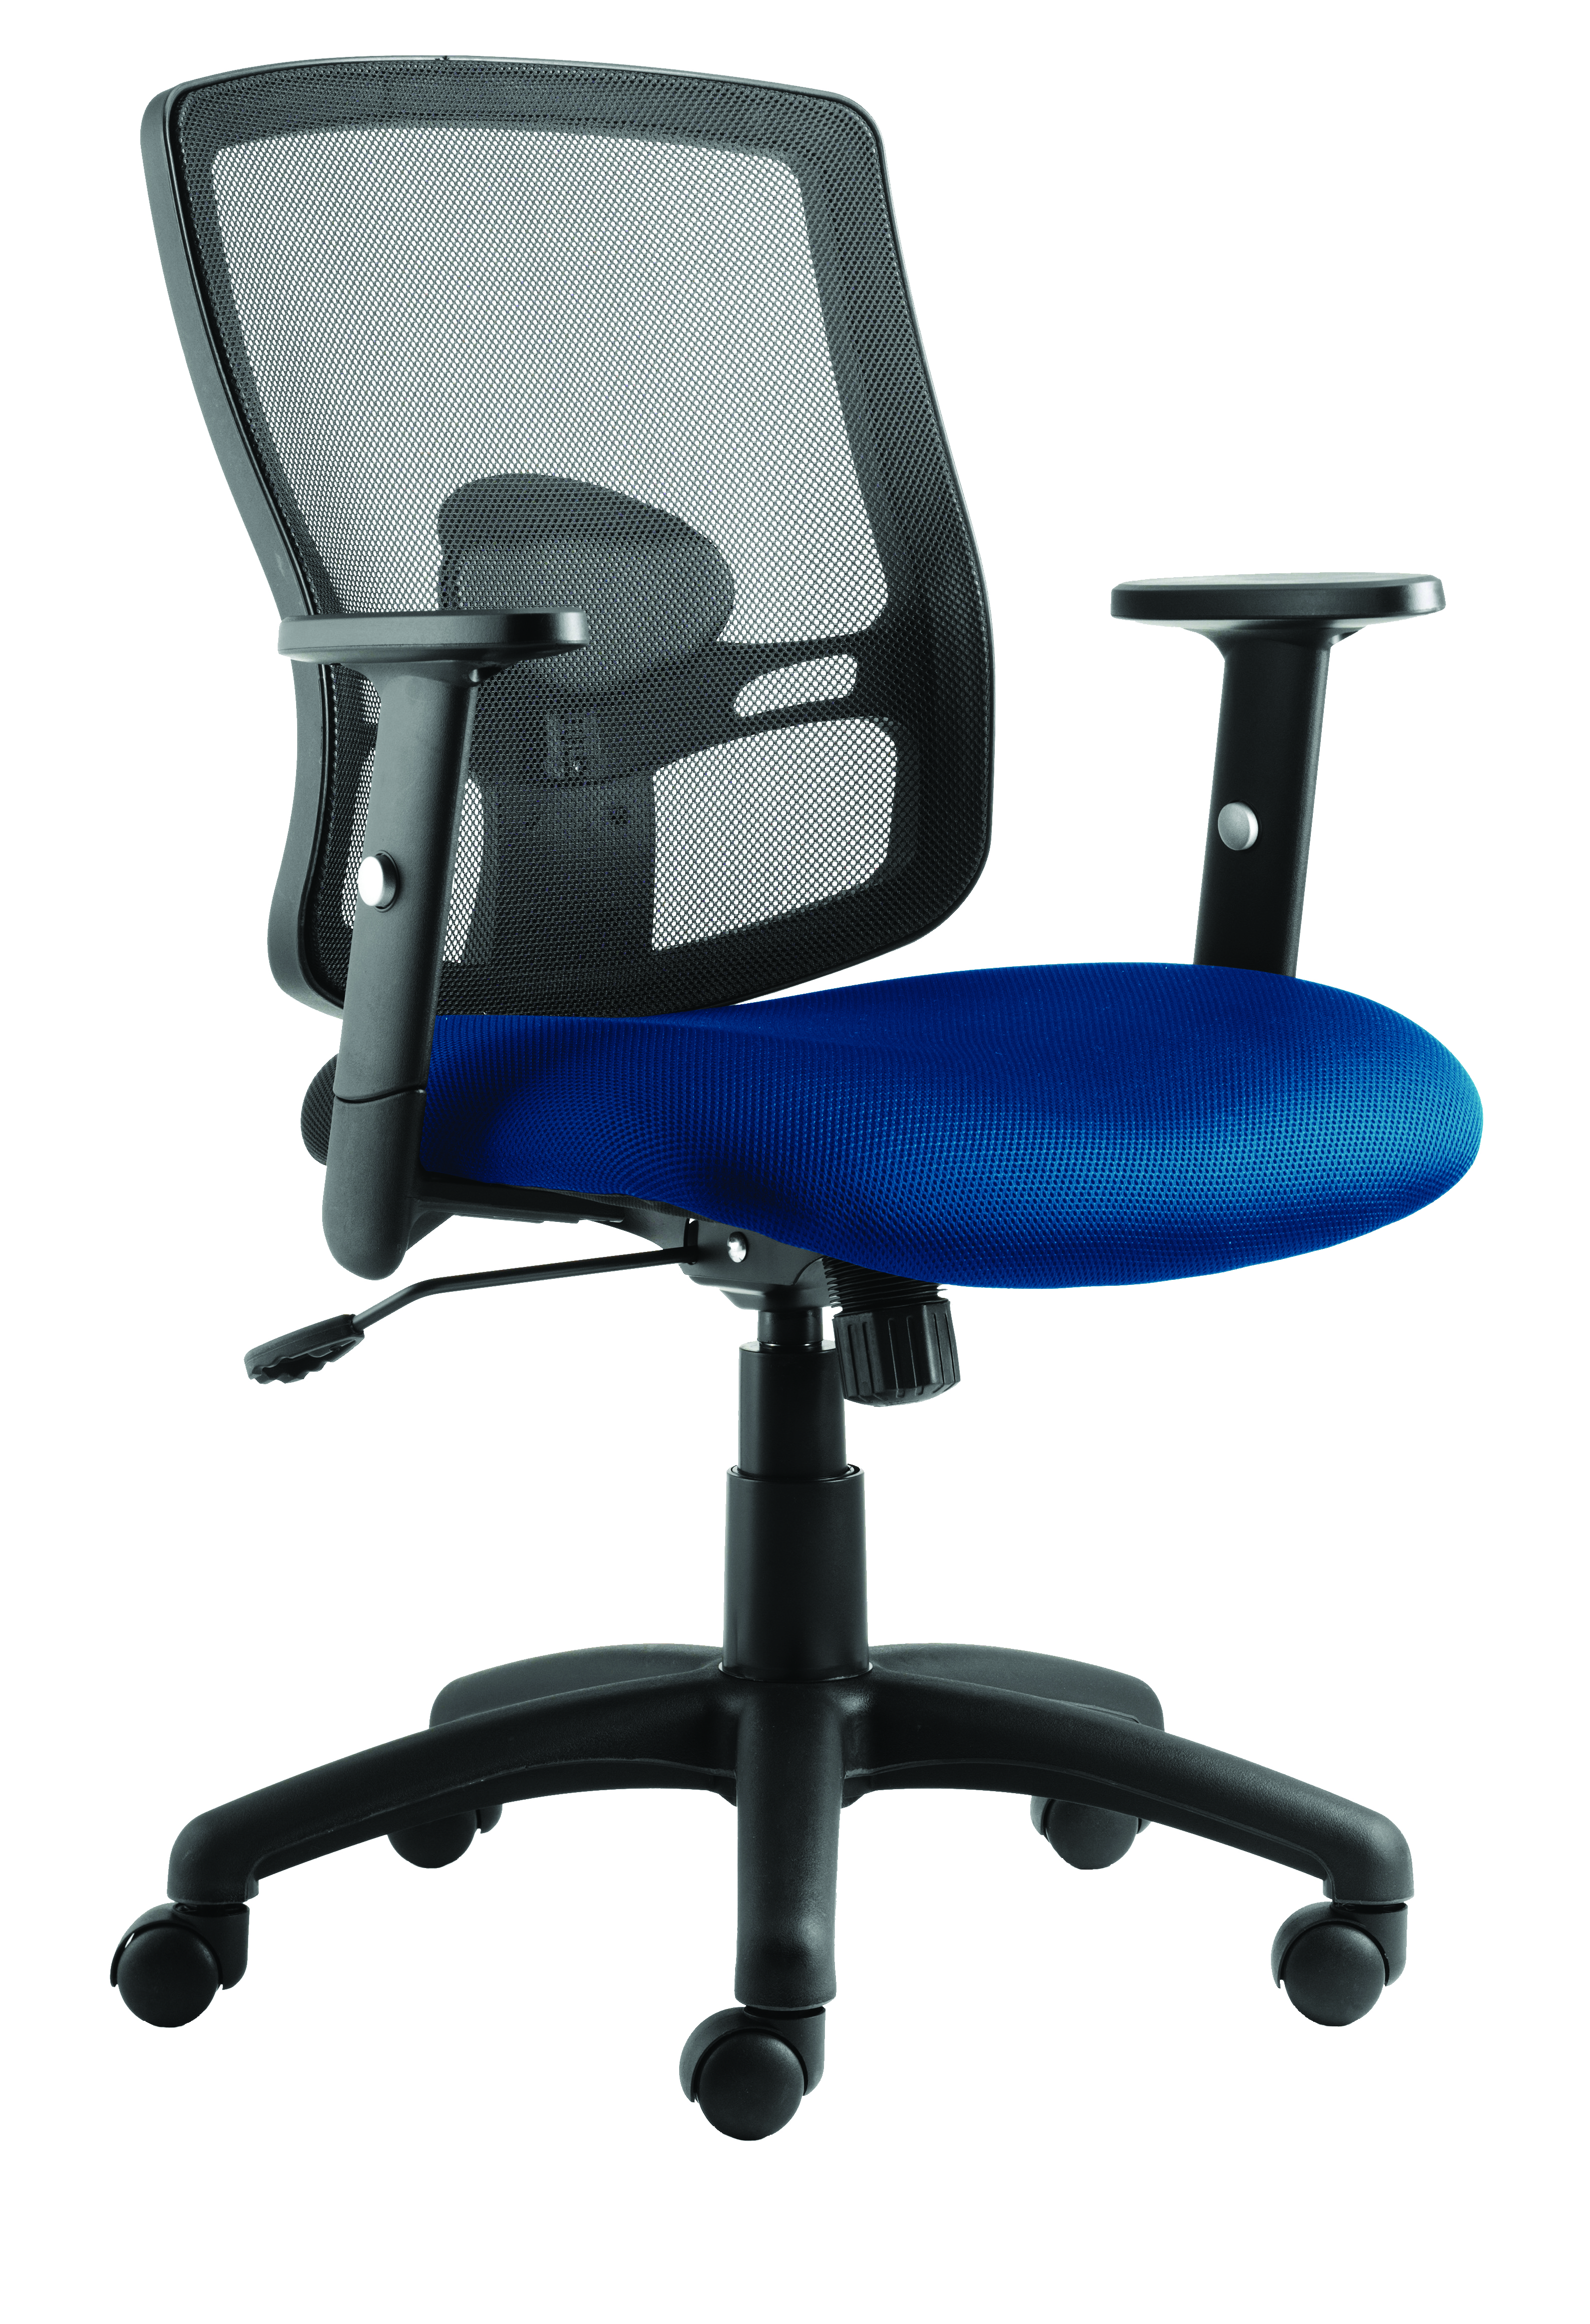 Desk Chairs Portland Chair Blue Seat With Arms OP000219